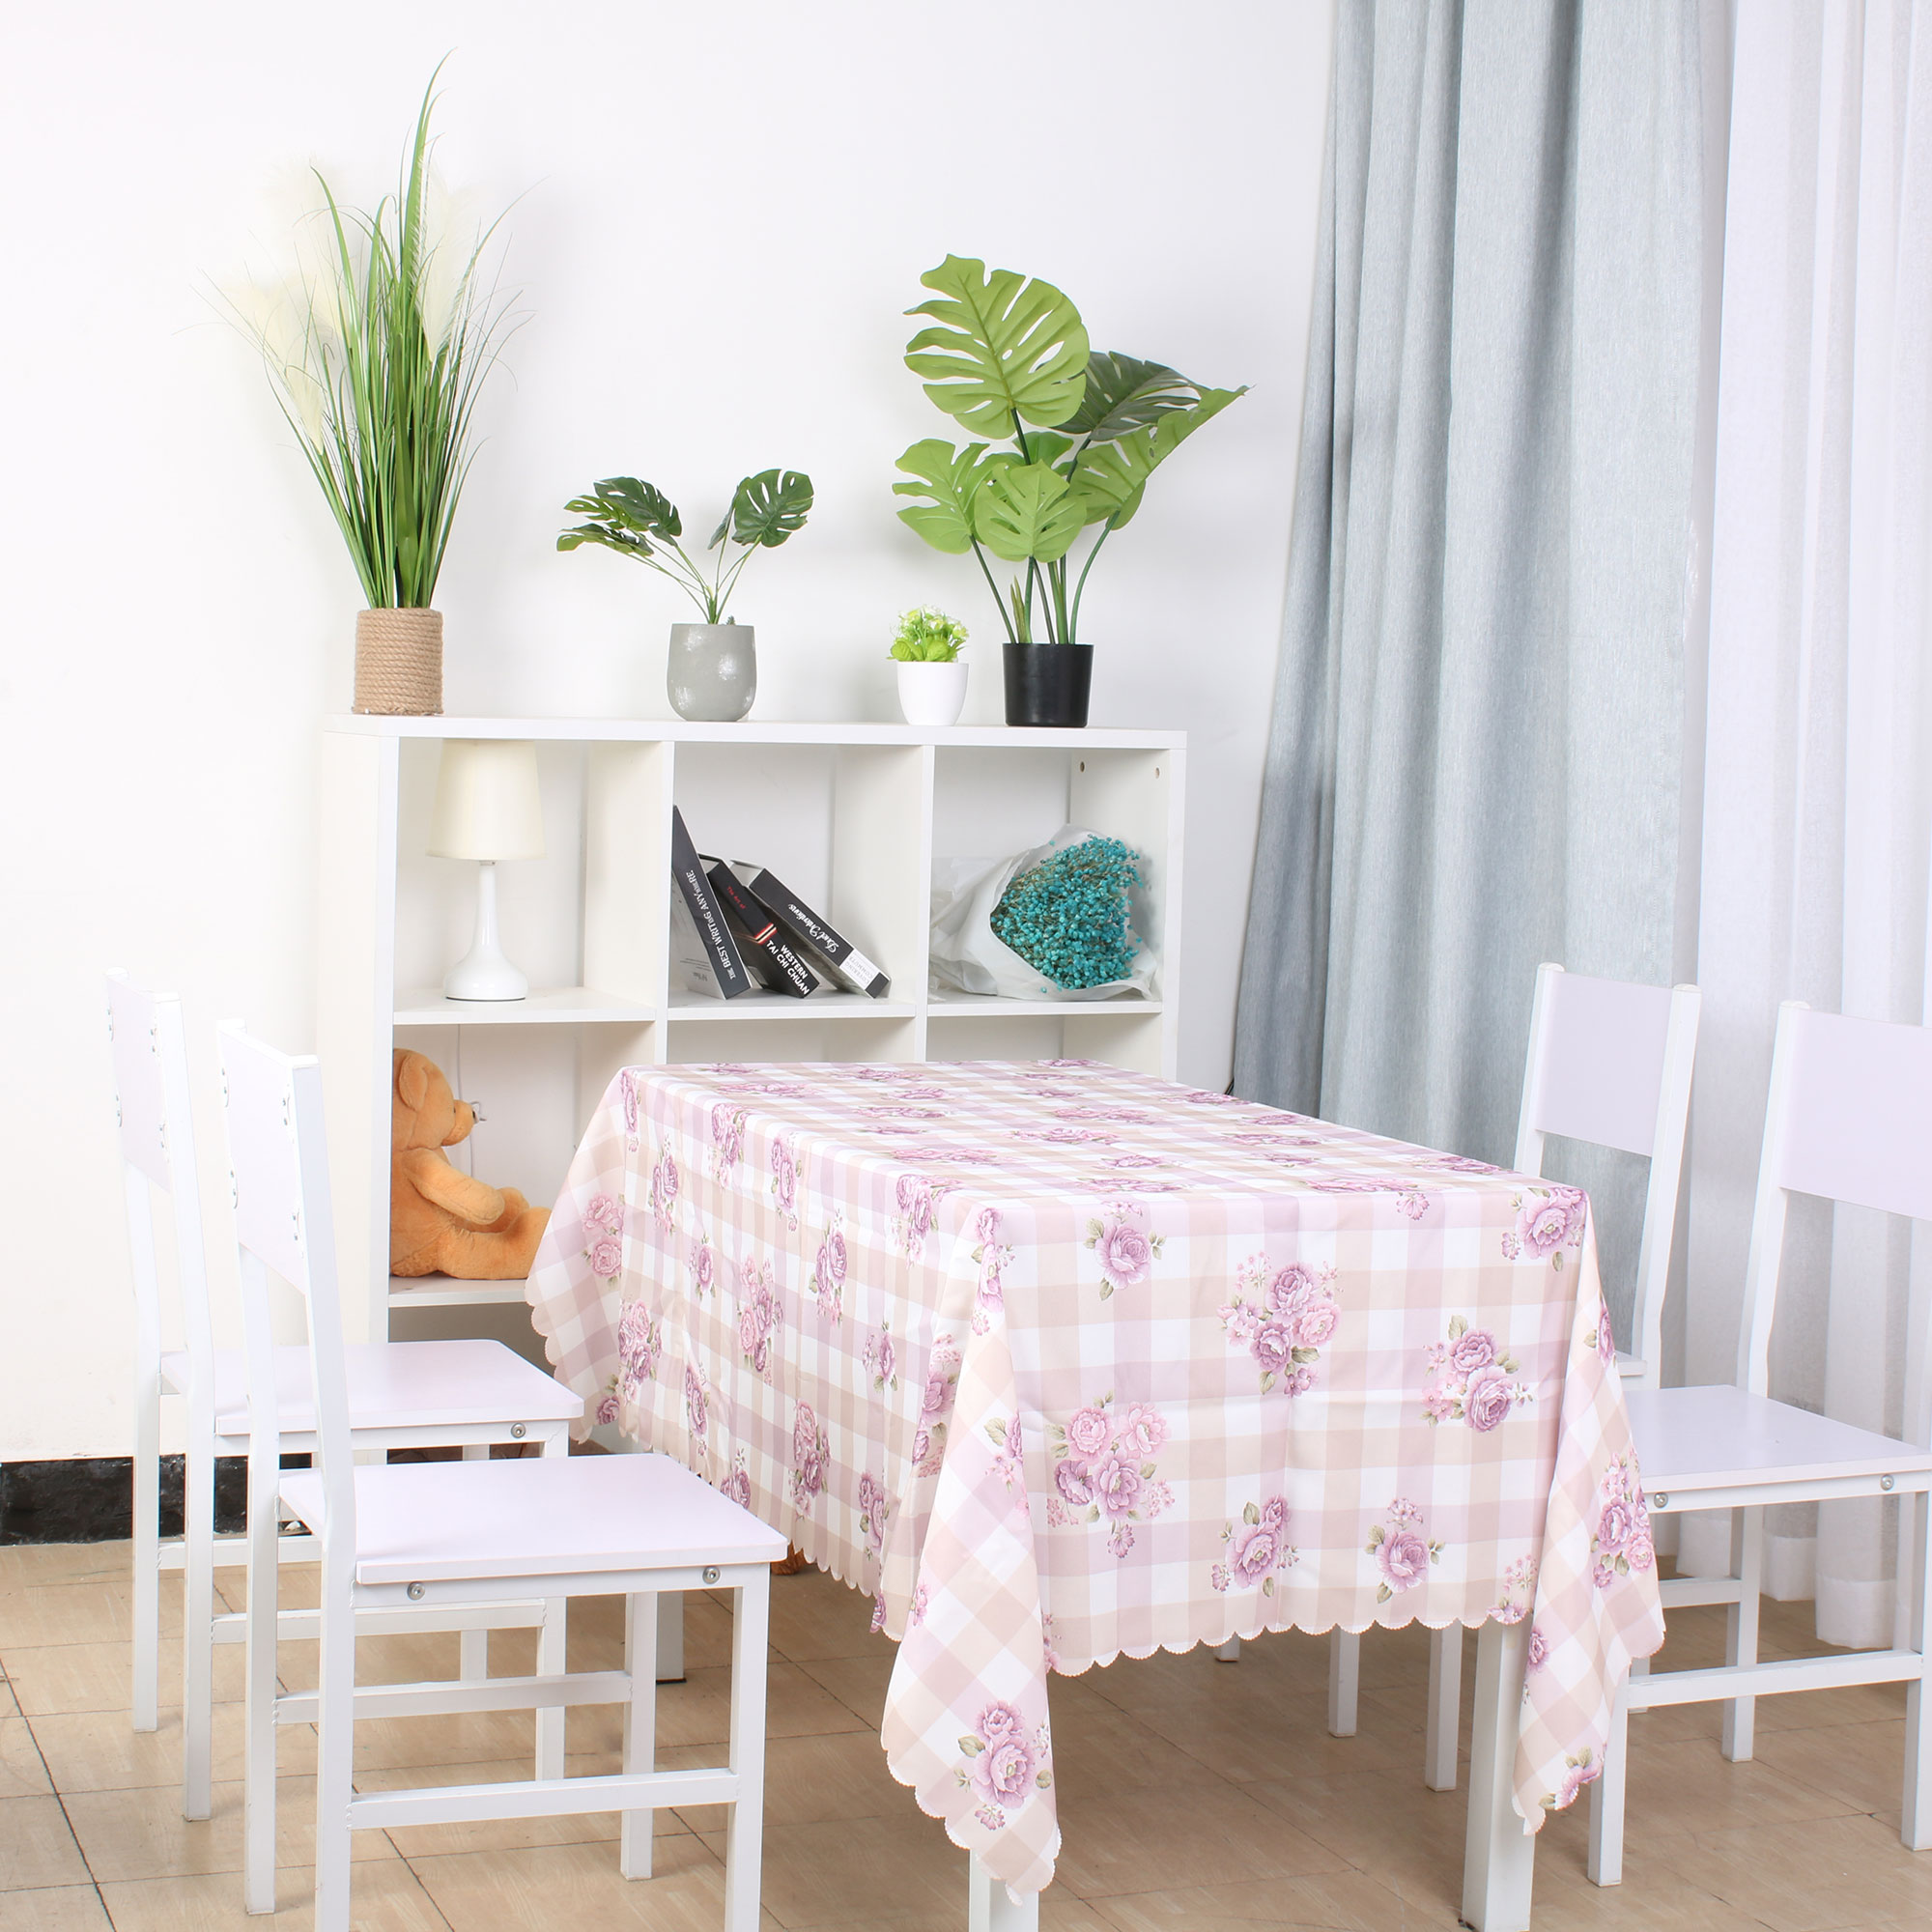 """Plaid Pattern Soft Tablecloths Cotton-linen Table Cover Kitchen for Party Wedding 63"""" x 39"""", #2"""